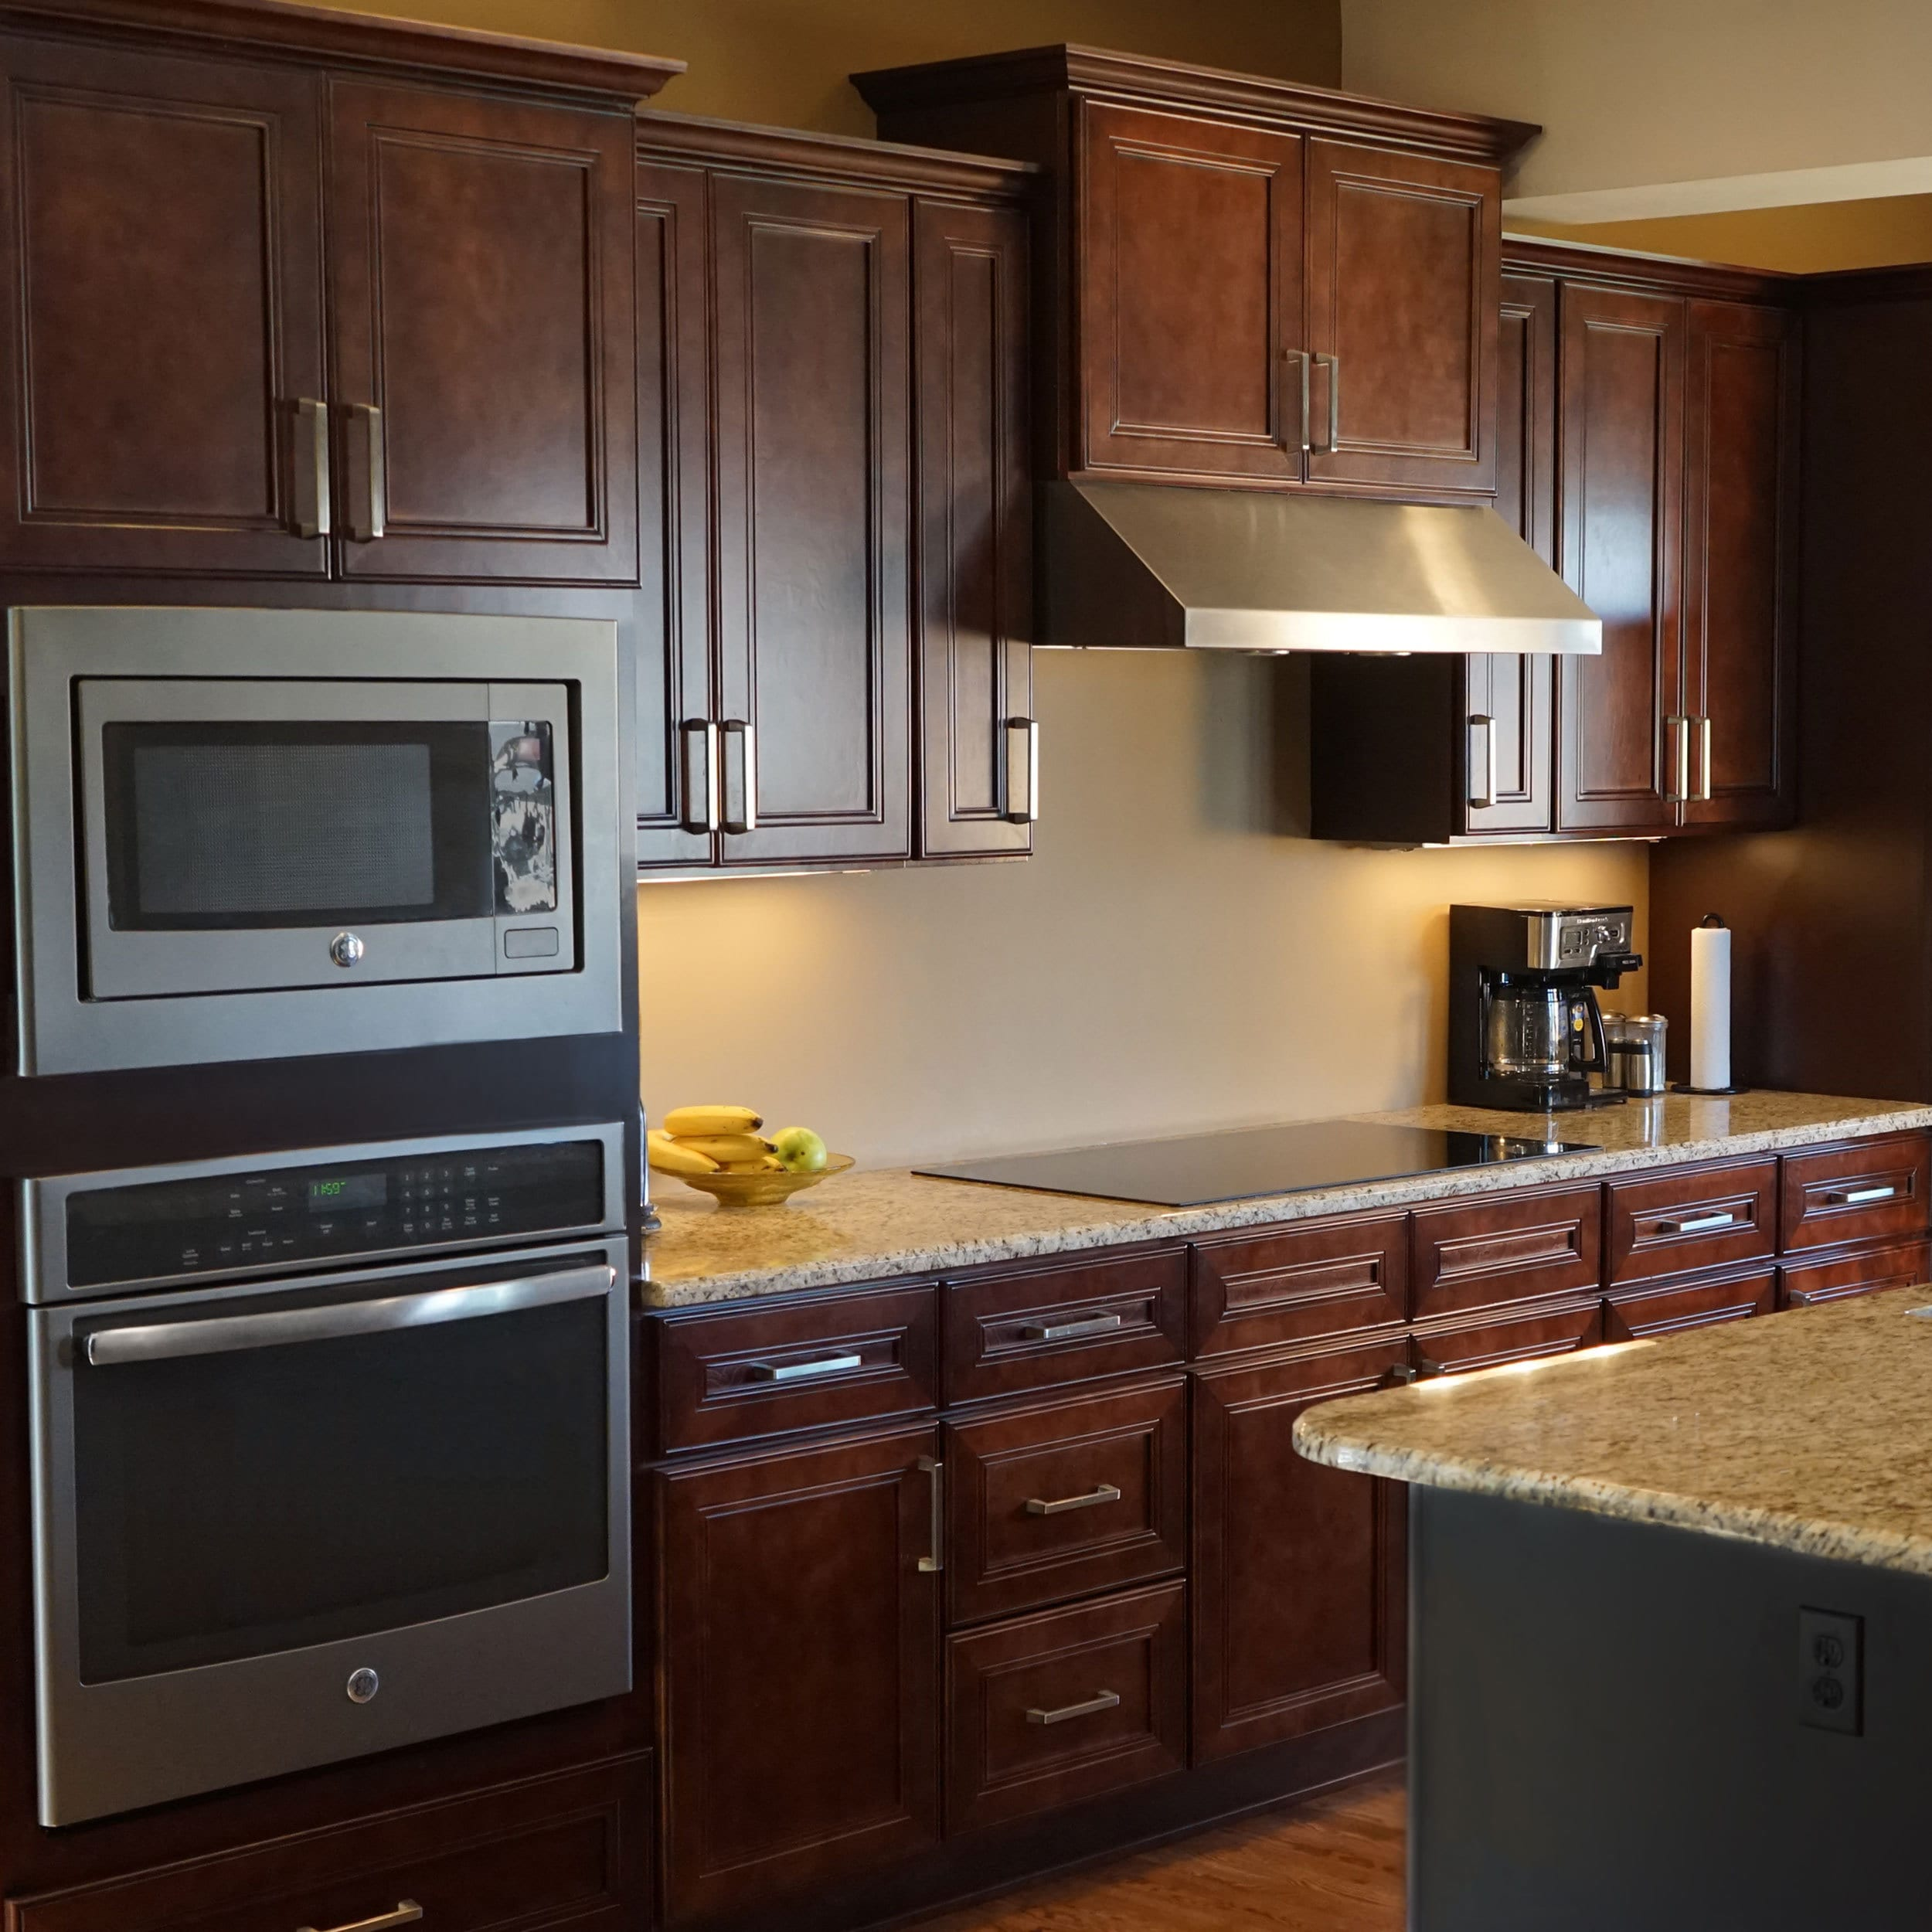 Everyday Cabinets 30 Inch Cherry Mahogany Brown Leo Saddle 3 Drawer Base Kitchen Cabinet